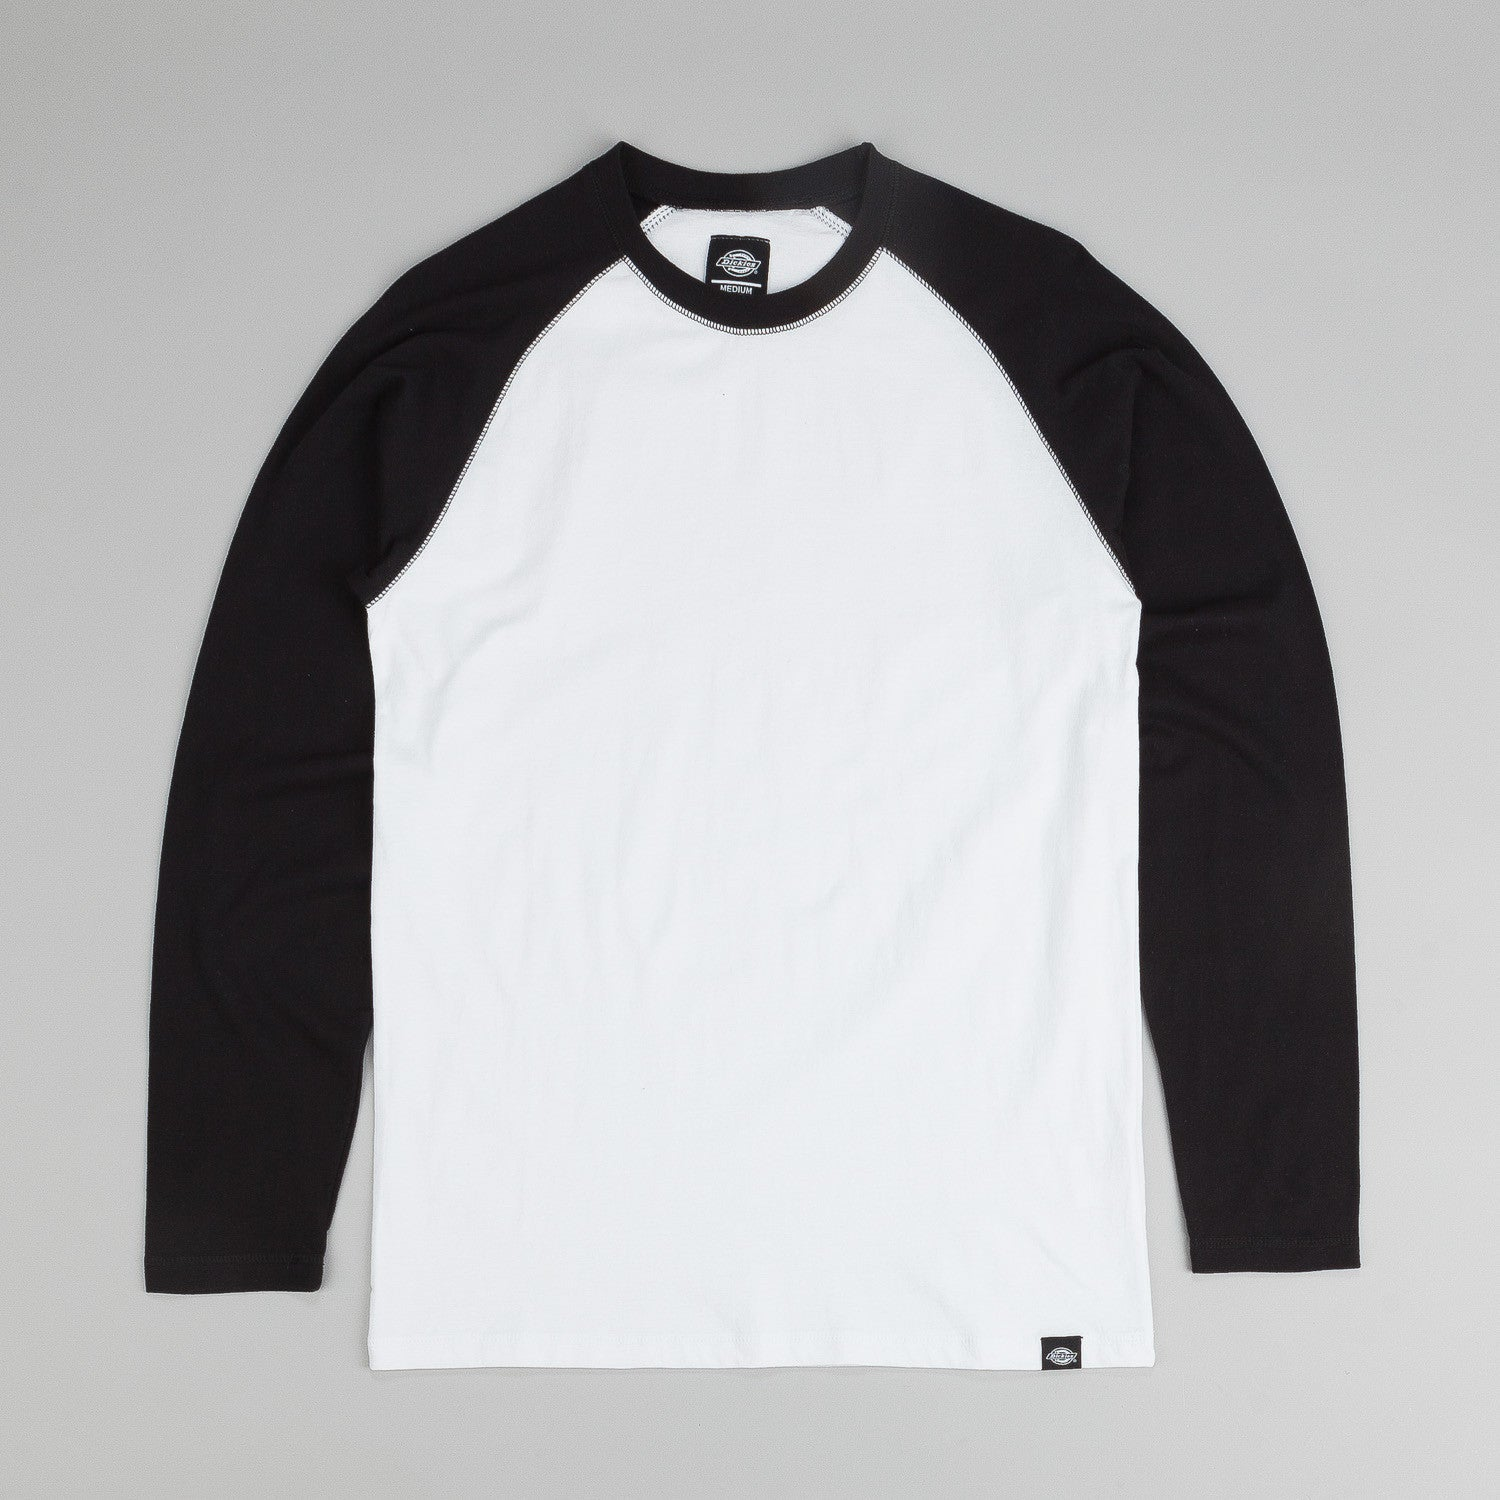 Dickies Lake Worth L/S T-Shirt - White / Black